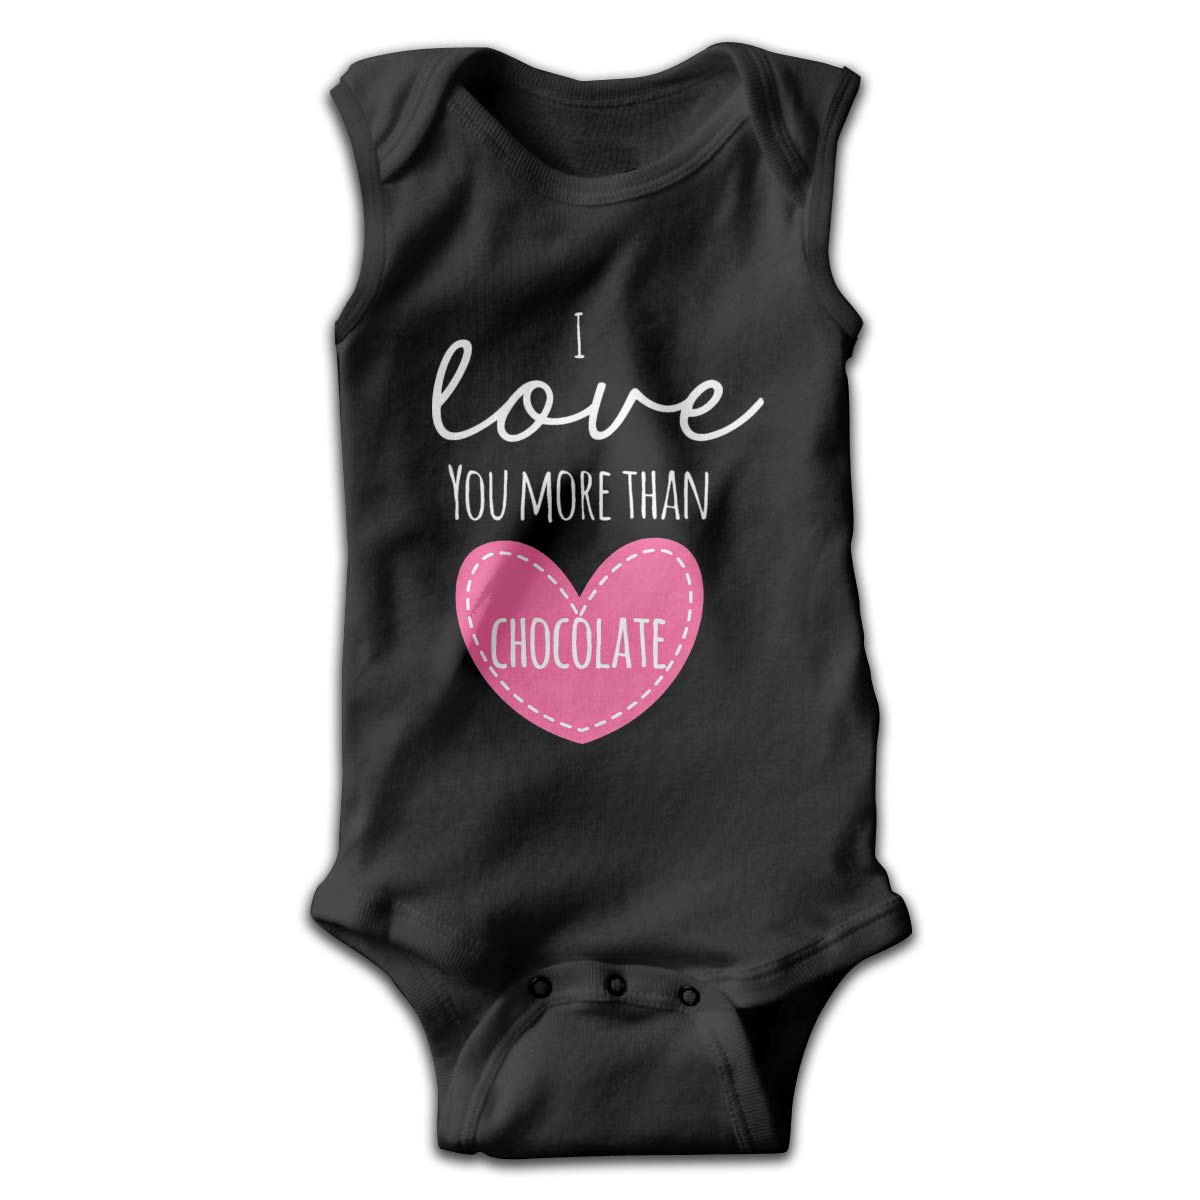 Infant Baby Girls Rompers Sleeveless Cotton Jumpsuit,I Love You More Than Chocolate Bodysuit Summer Pajamas